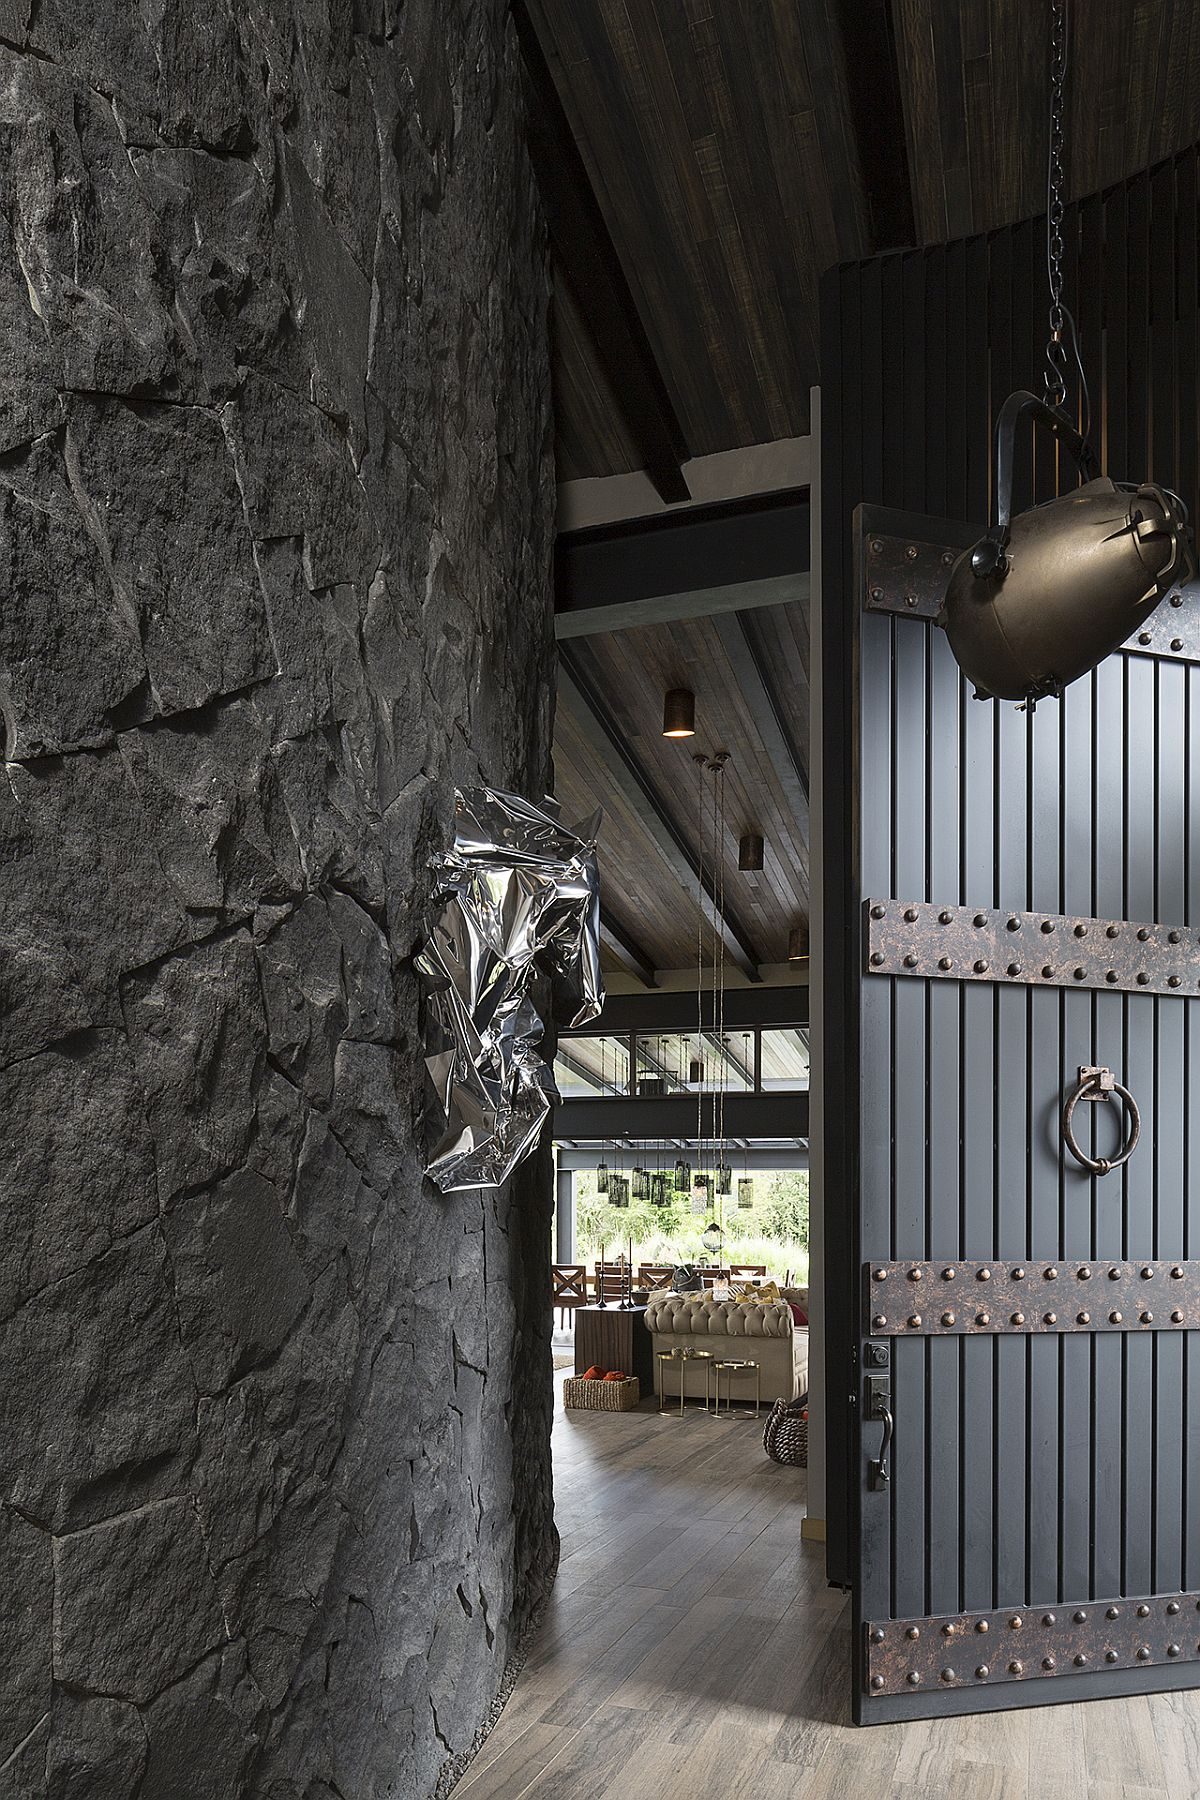 Entrance of the house with traditional Mexican design touches and dark stone walls